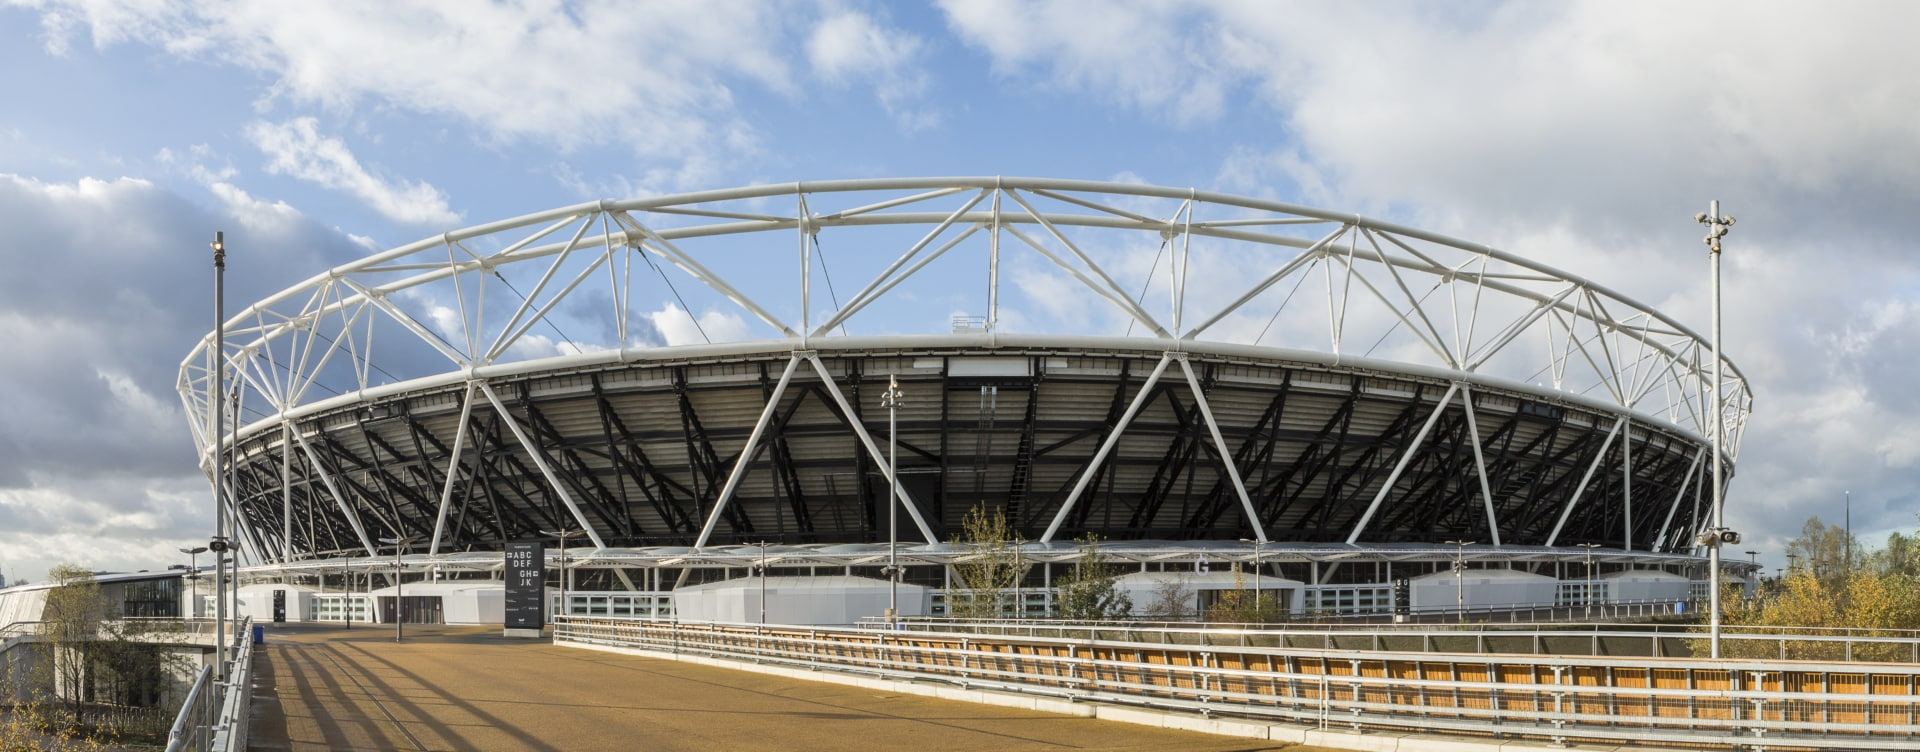 The London Olympic Stadium is a stunning multi-purpose outdoor stadium at Queen Elizabeth Olympic Park in the Stratford district of London.